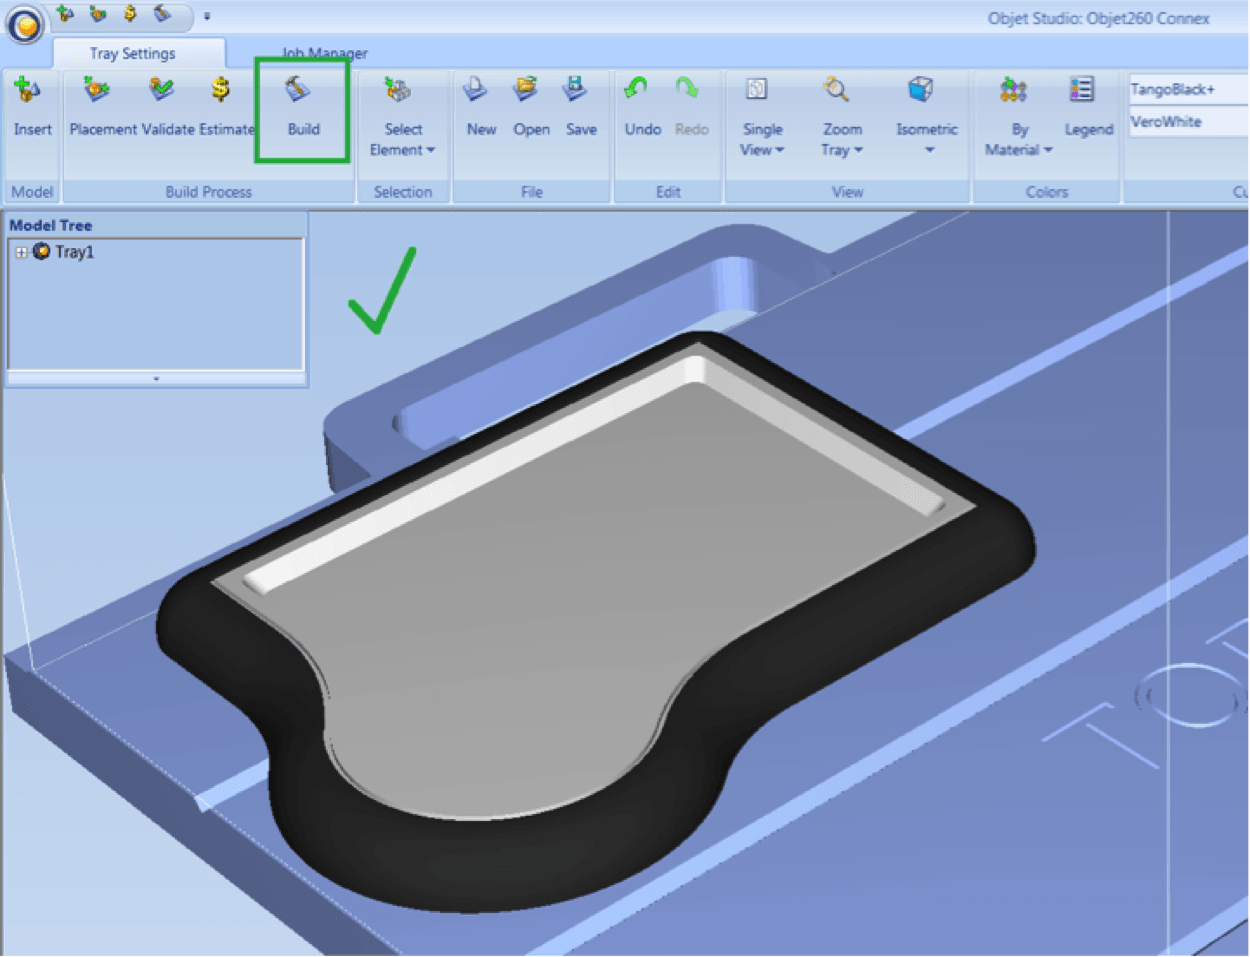 Once the correct material is selected you can build your part